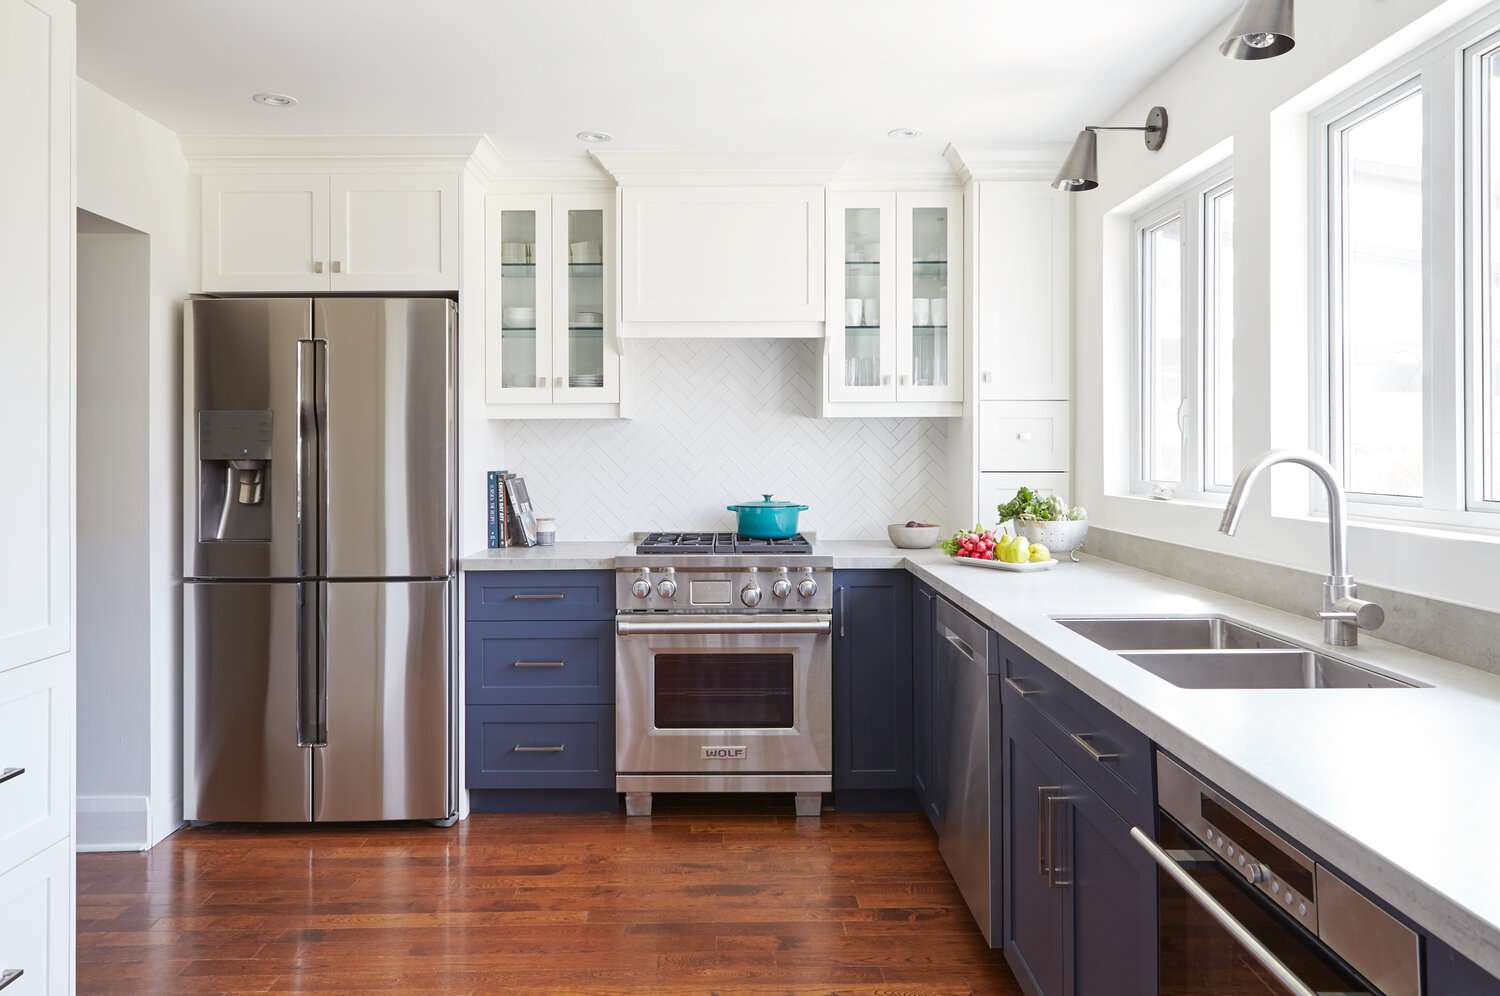 Minimalist kitchen with blue cabinetry, exposed dinnerware cabinets